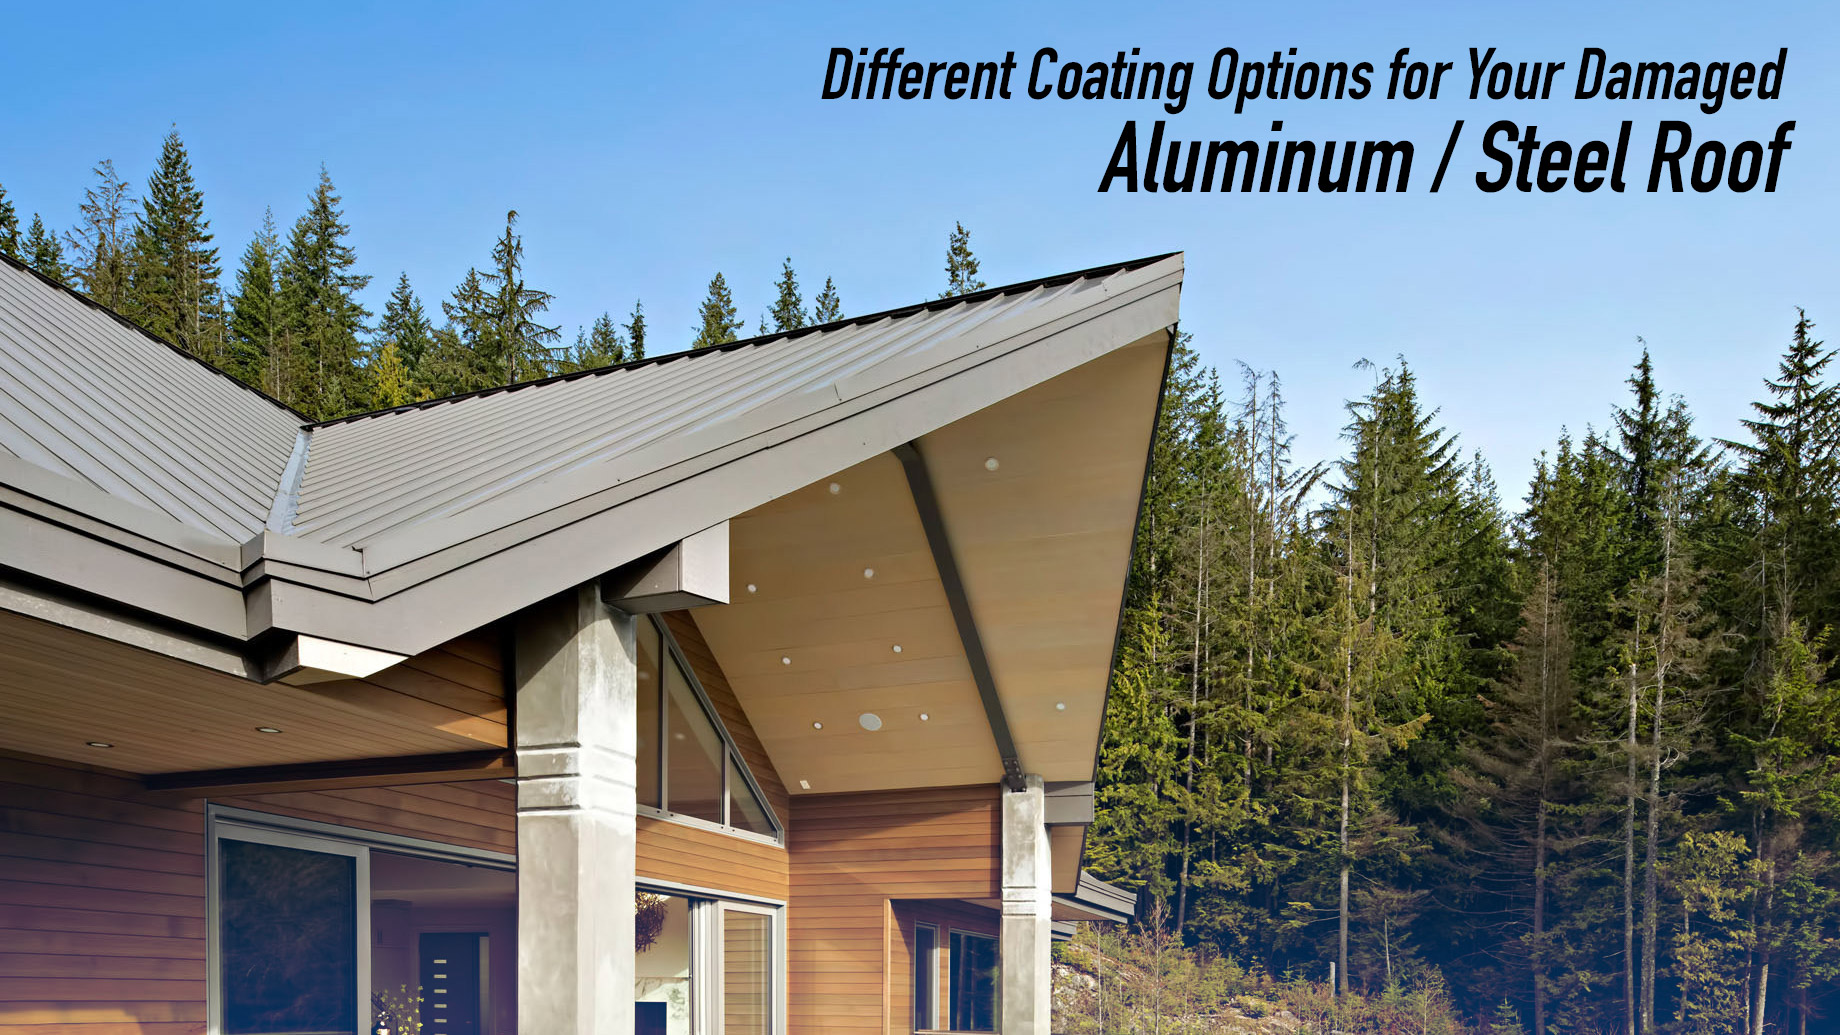 Different Coating Options for Your Damaged Aluminum / Steel Roof